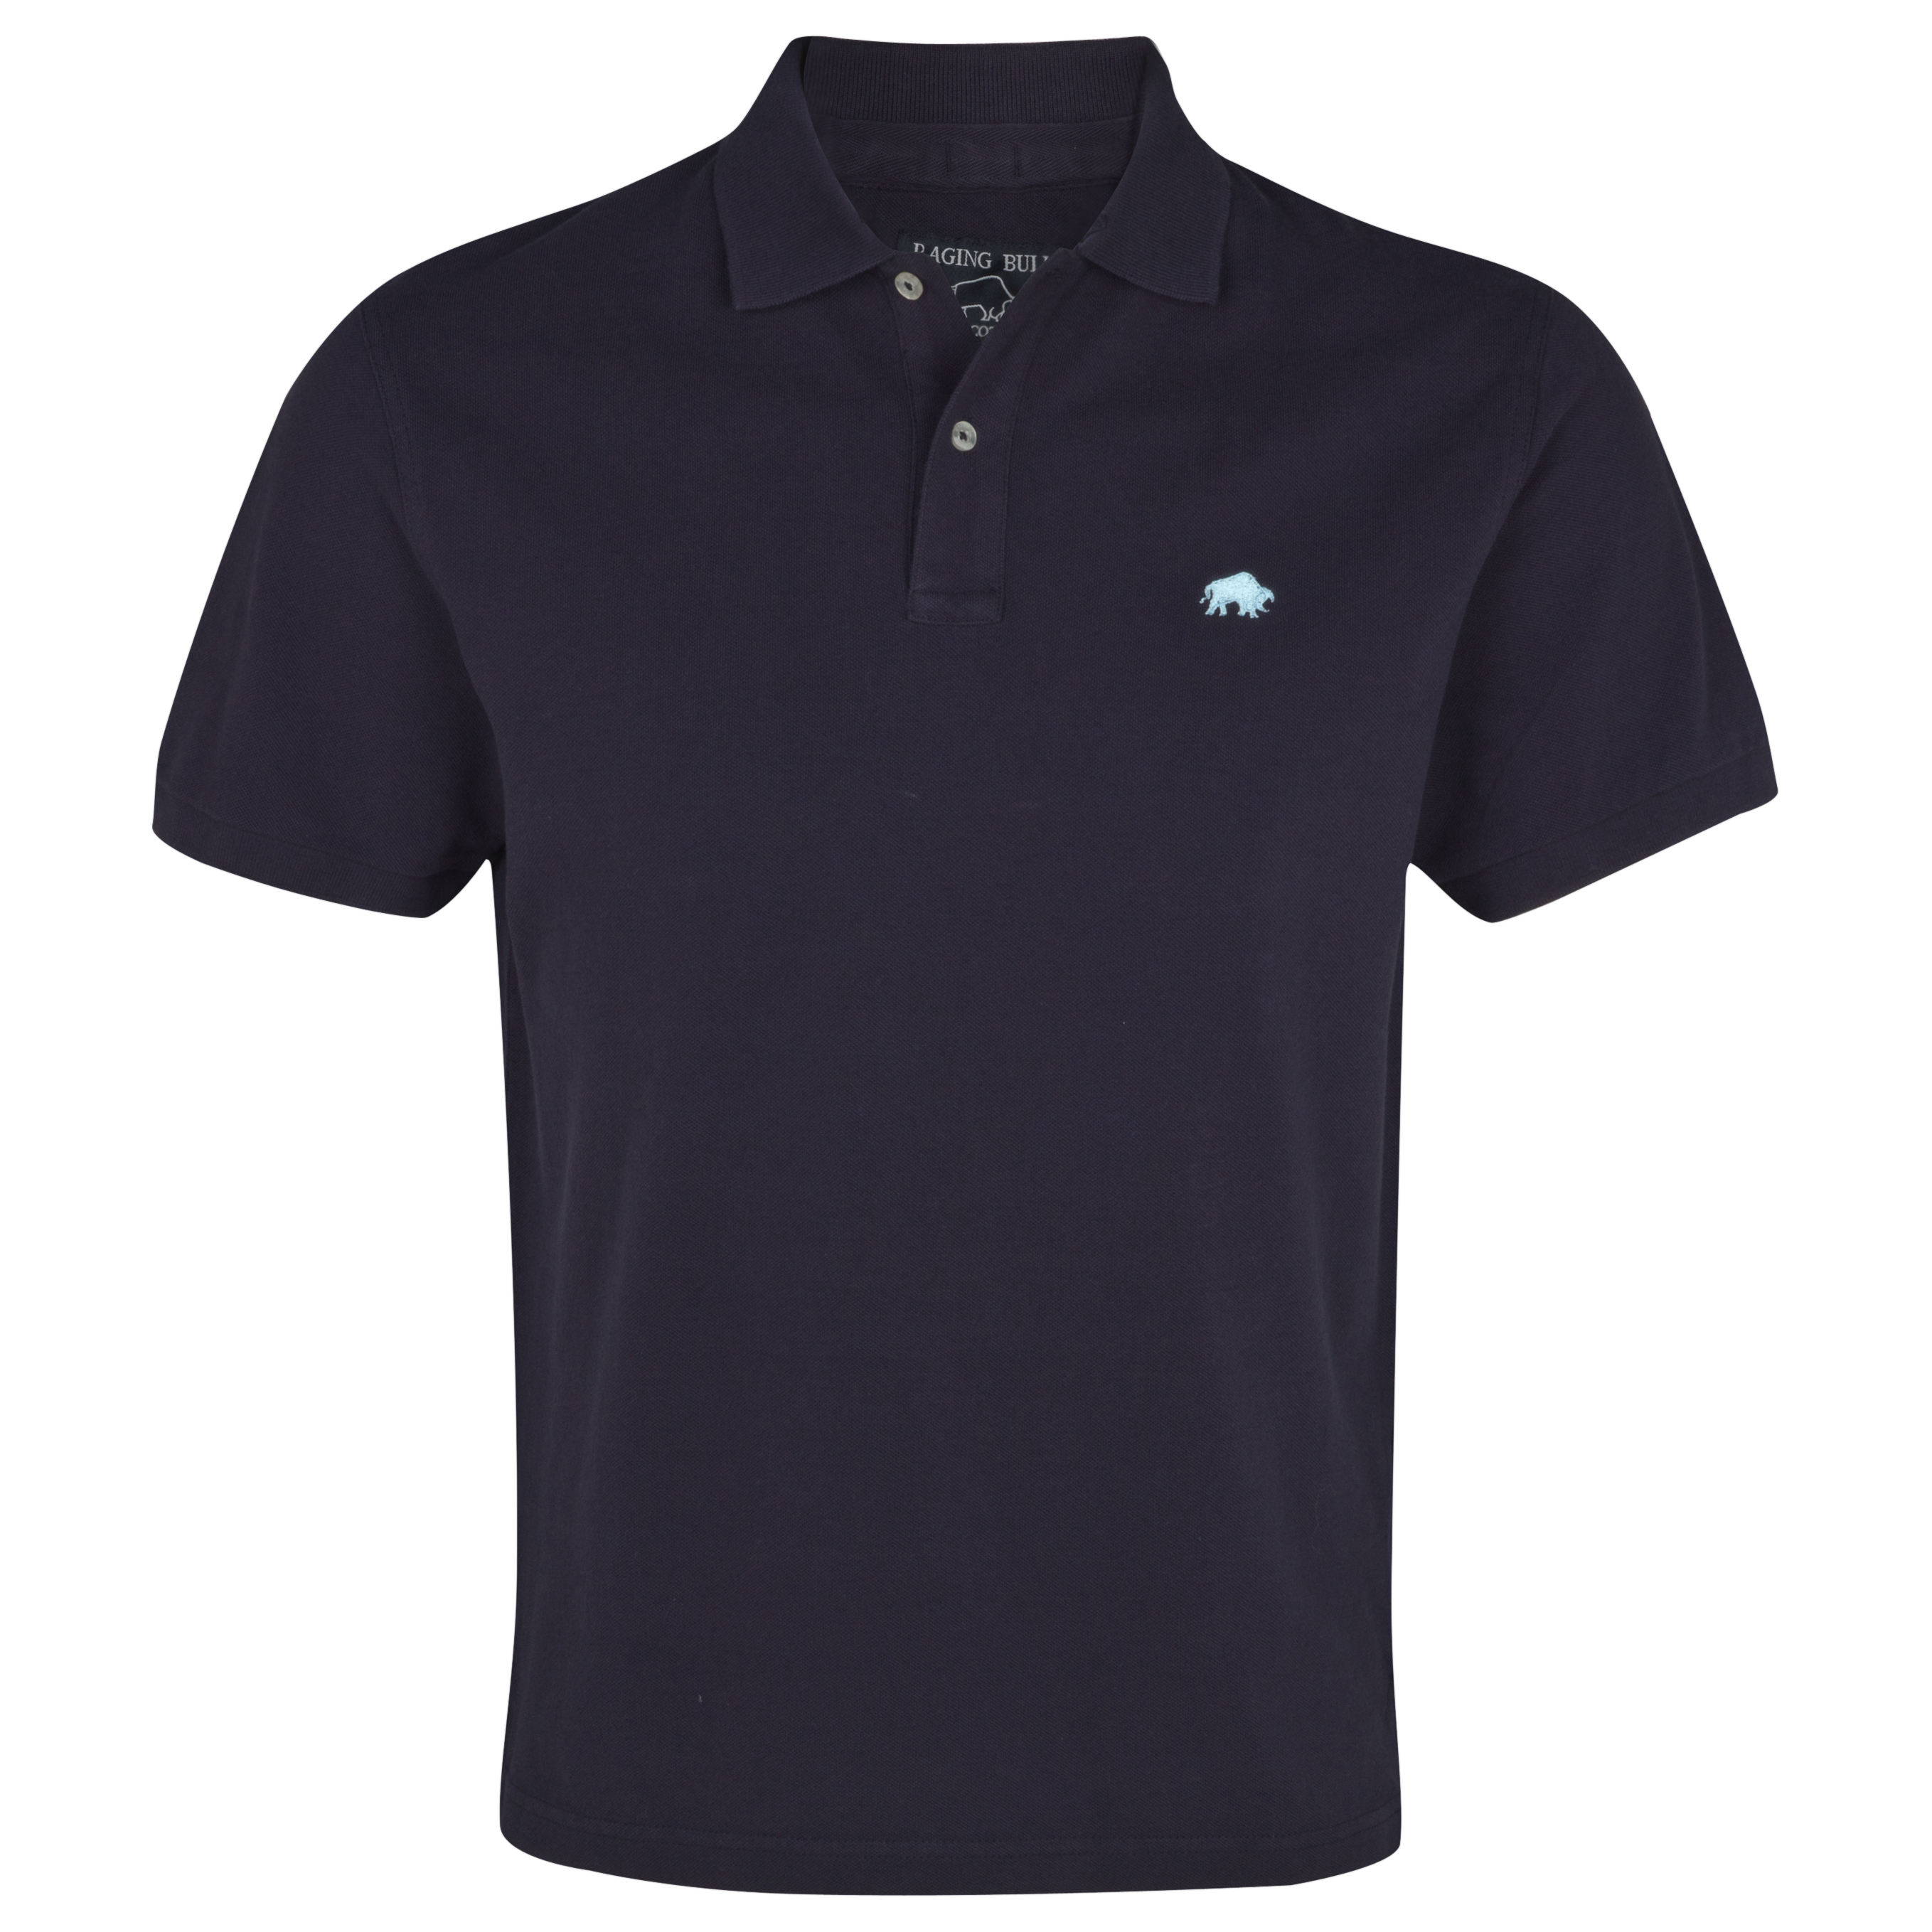 Raging Bull Signature Pique Polo - Navy. for 25€